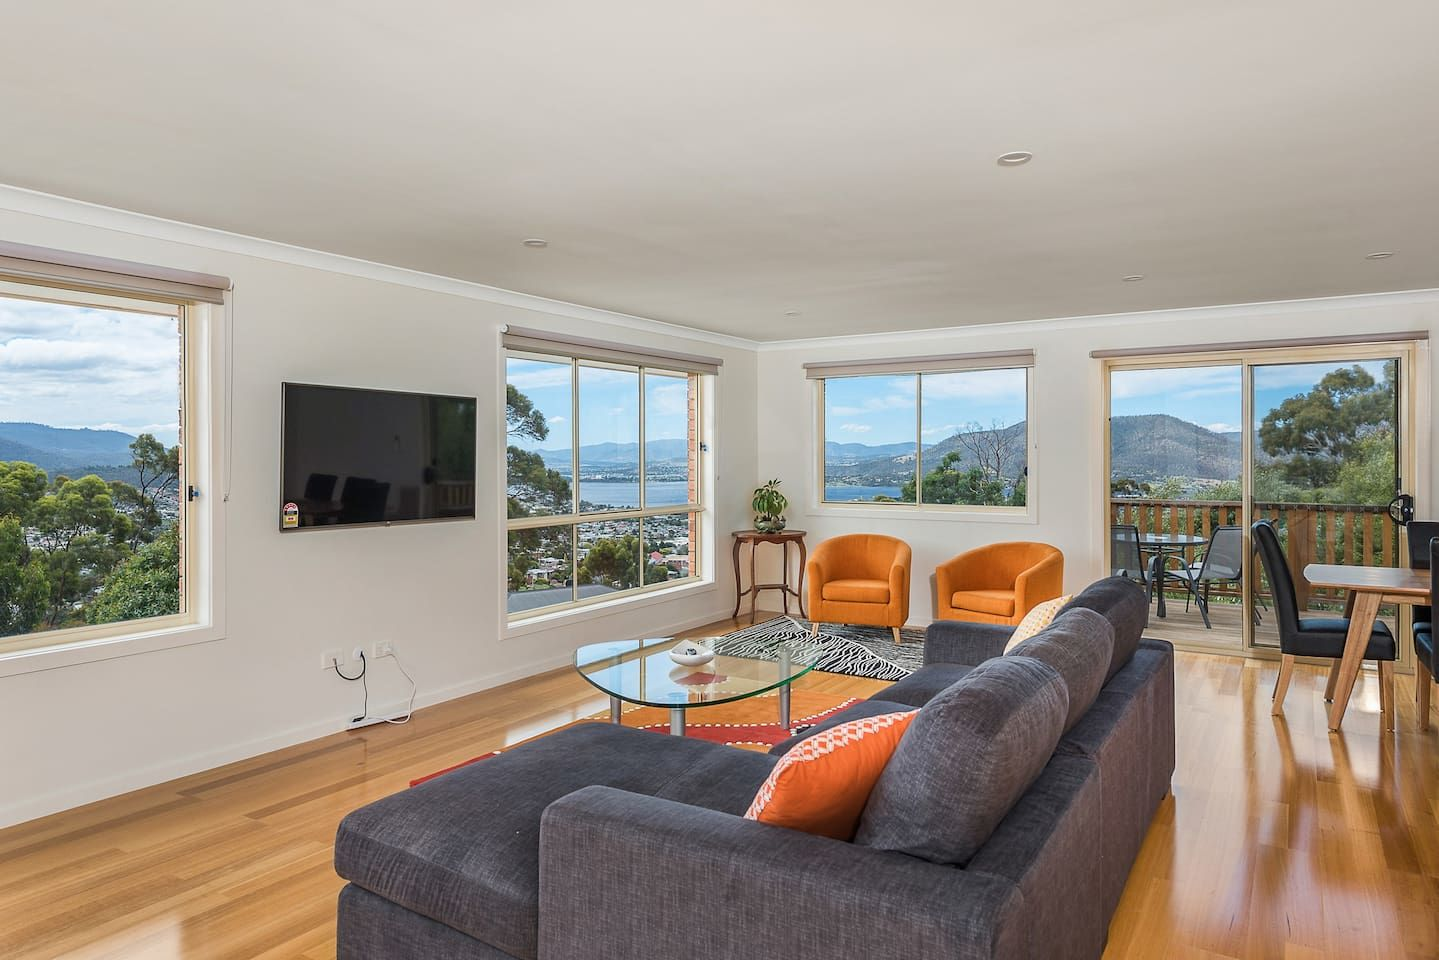 Mayhill Views Apartment For Rent In West Moonah Tasmania Australia Holiday Accommodation Professionally Managed In 2020 Renting A House Apartments For Rent House